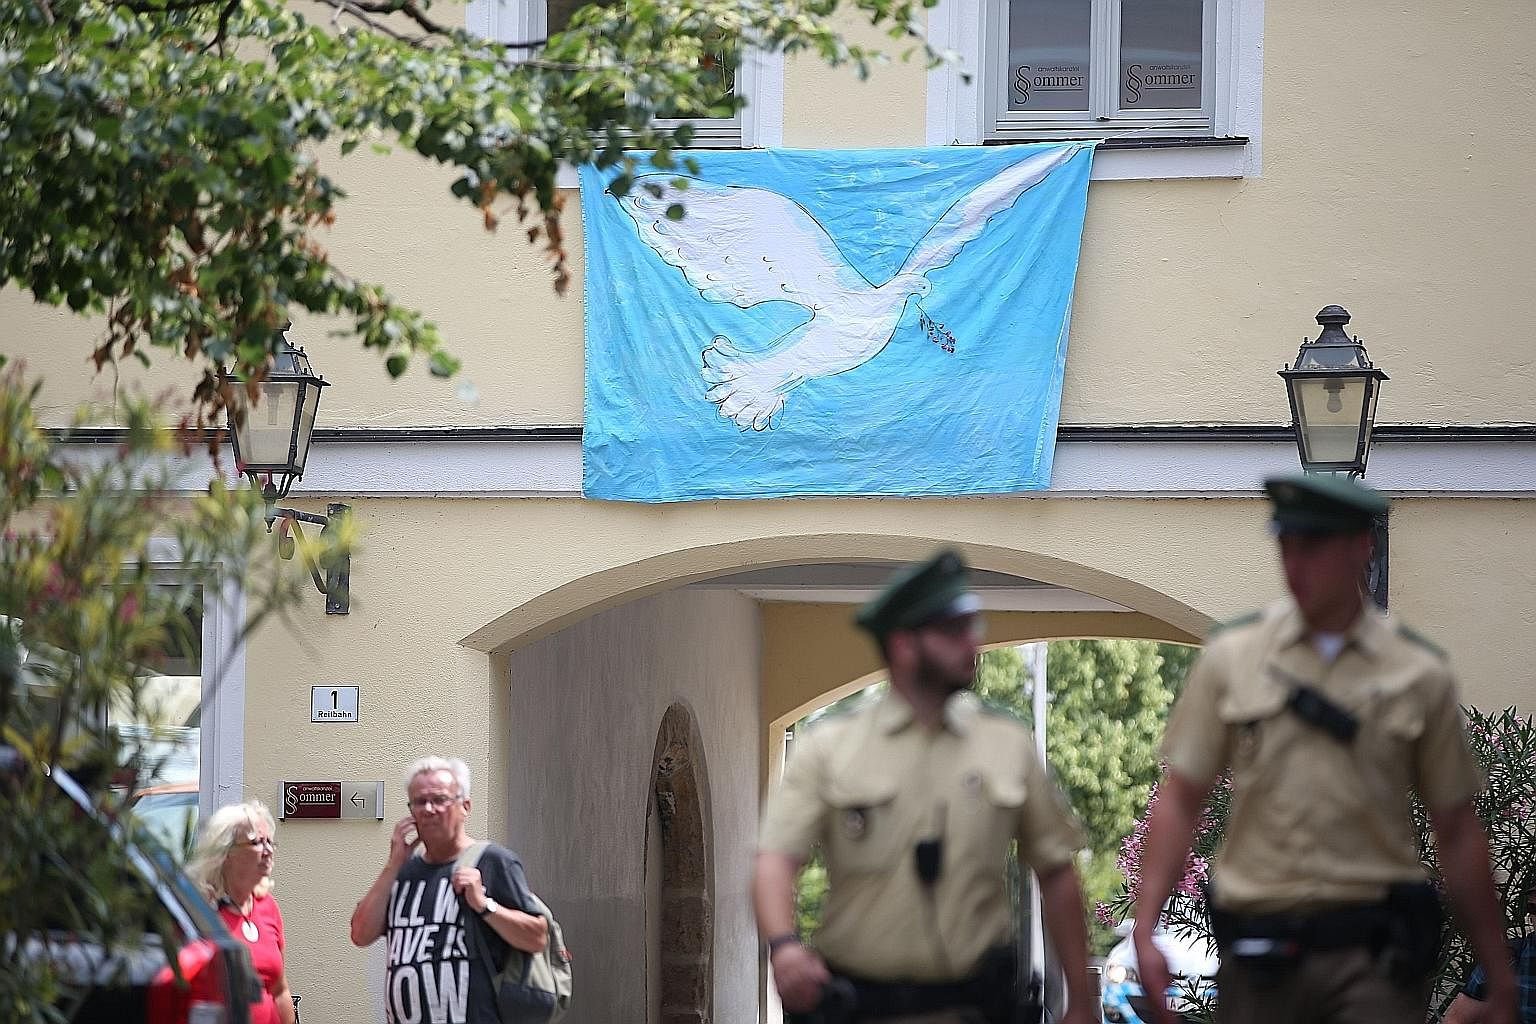 The man alleged to be Mohammad Daleel, the Syrian asylum seeker who detonated a bomb near the music festival in the German city of Ansbach. A banner depicting a peace dove in Ansbach, southern Germany, at the site where a Syrian blew himself up tryin